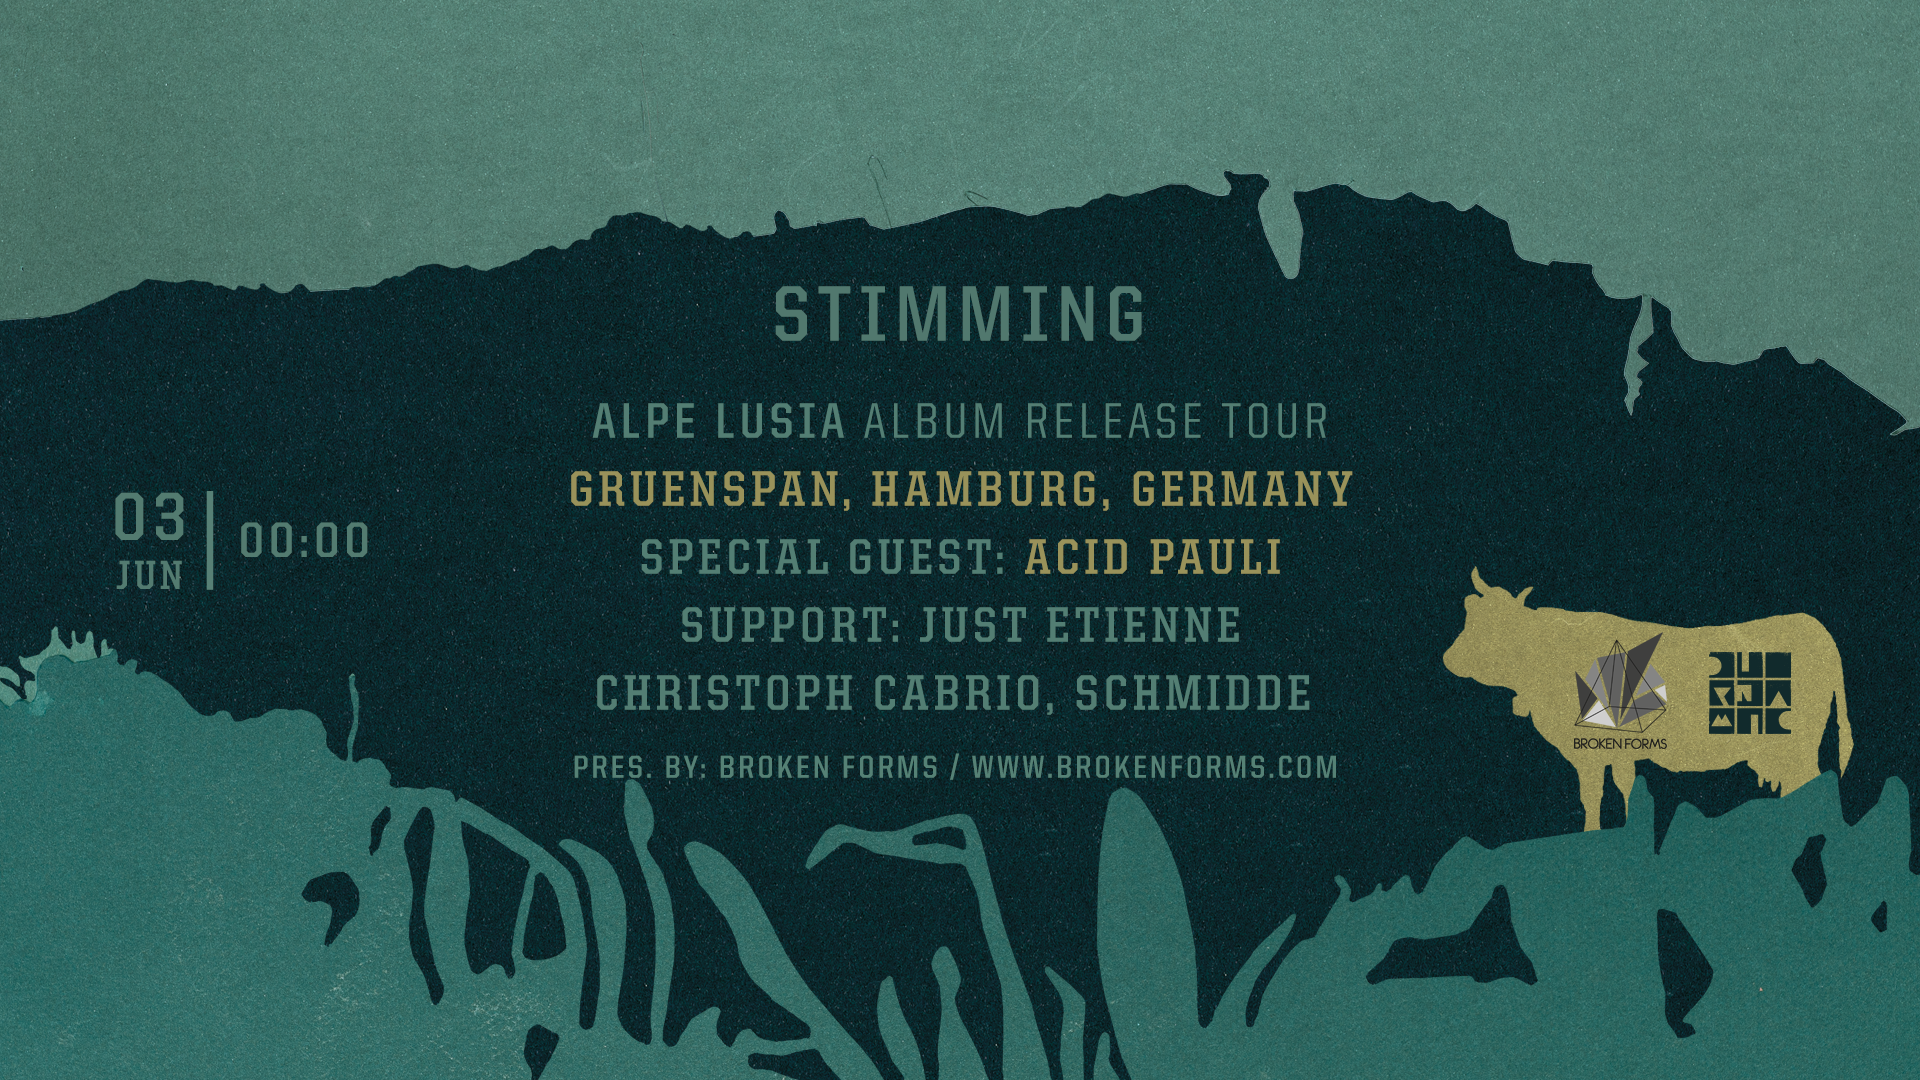 Stimming_event_1920x1080_Hamburg